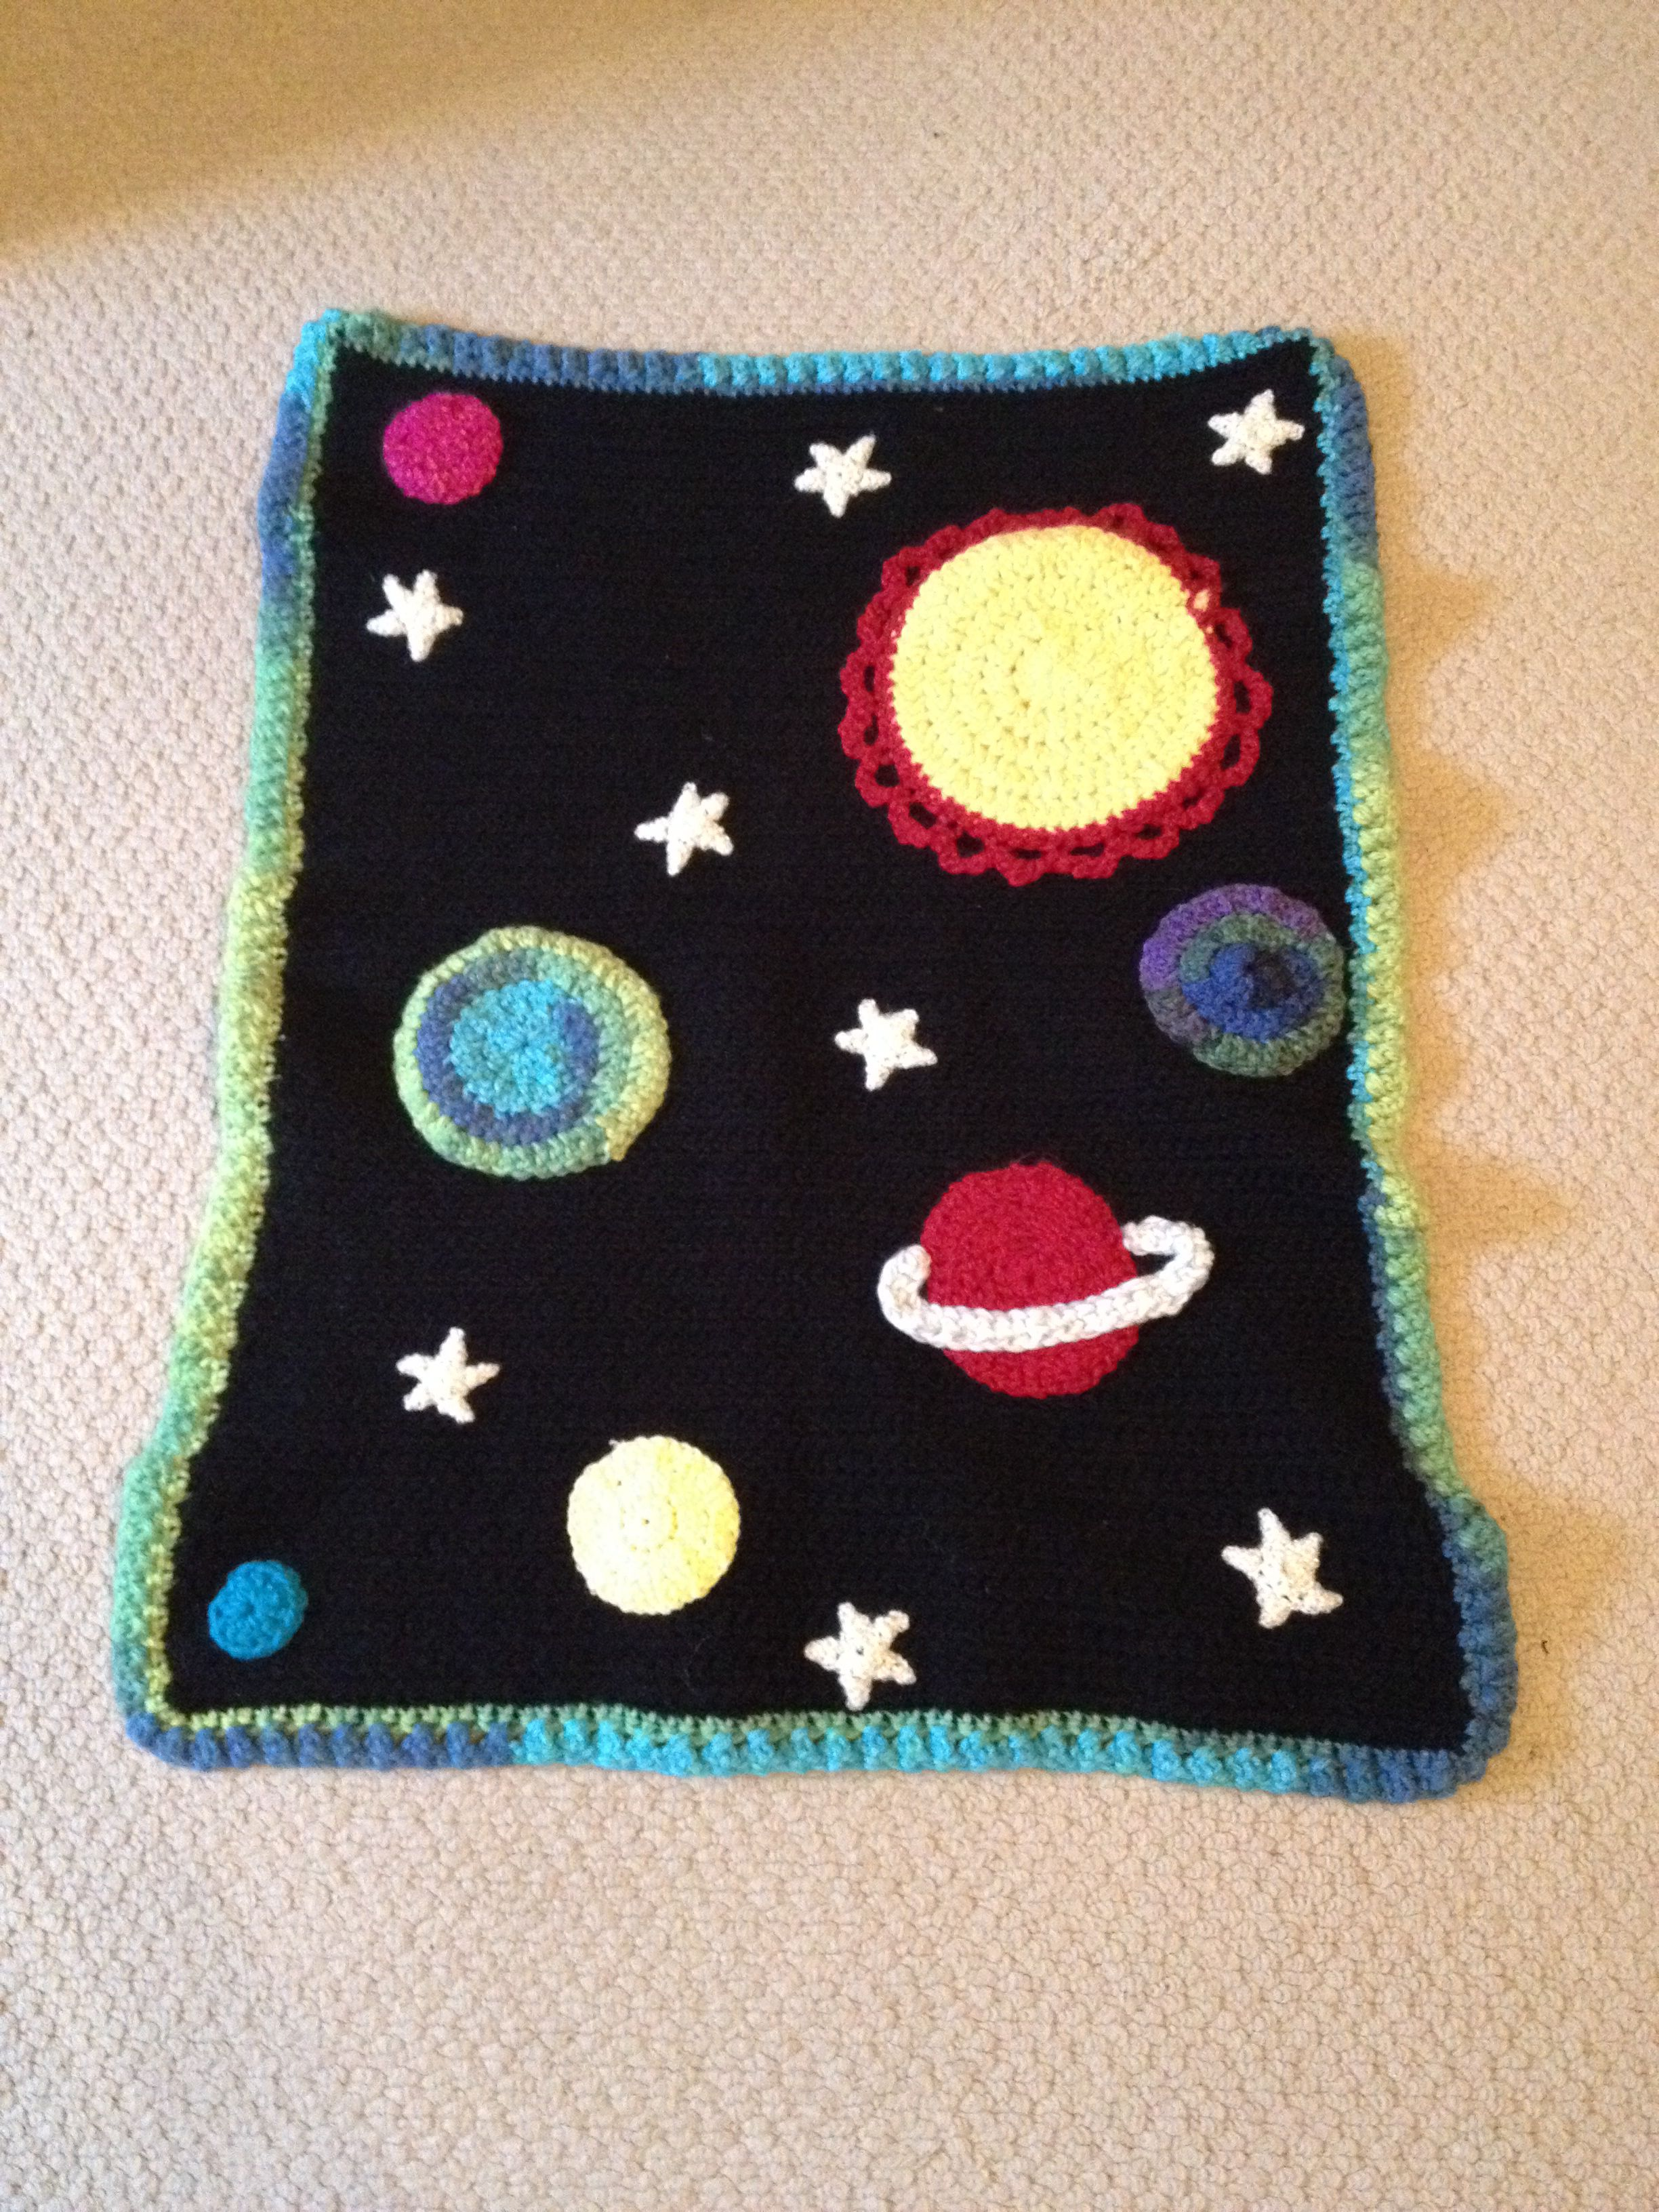 Crochet space themed baby blanket #c2cbabyblanket